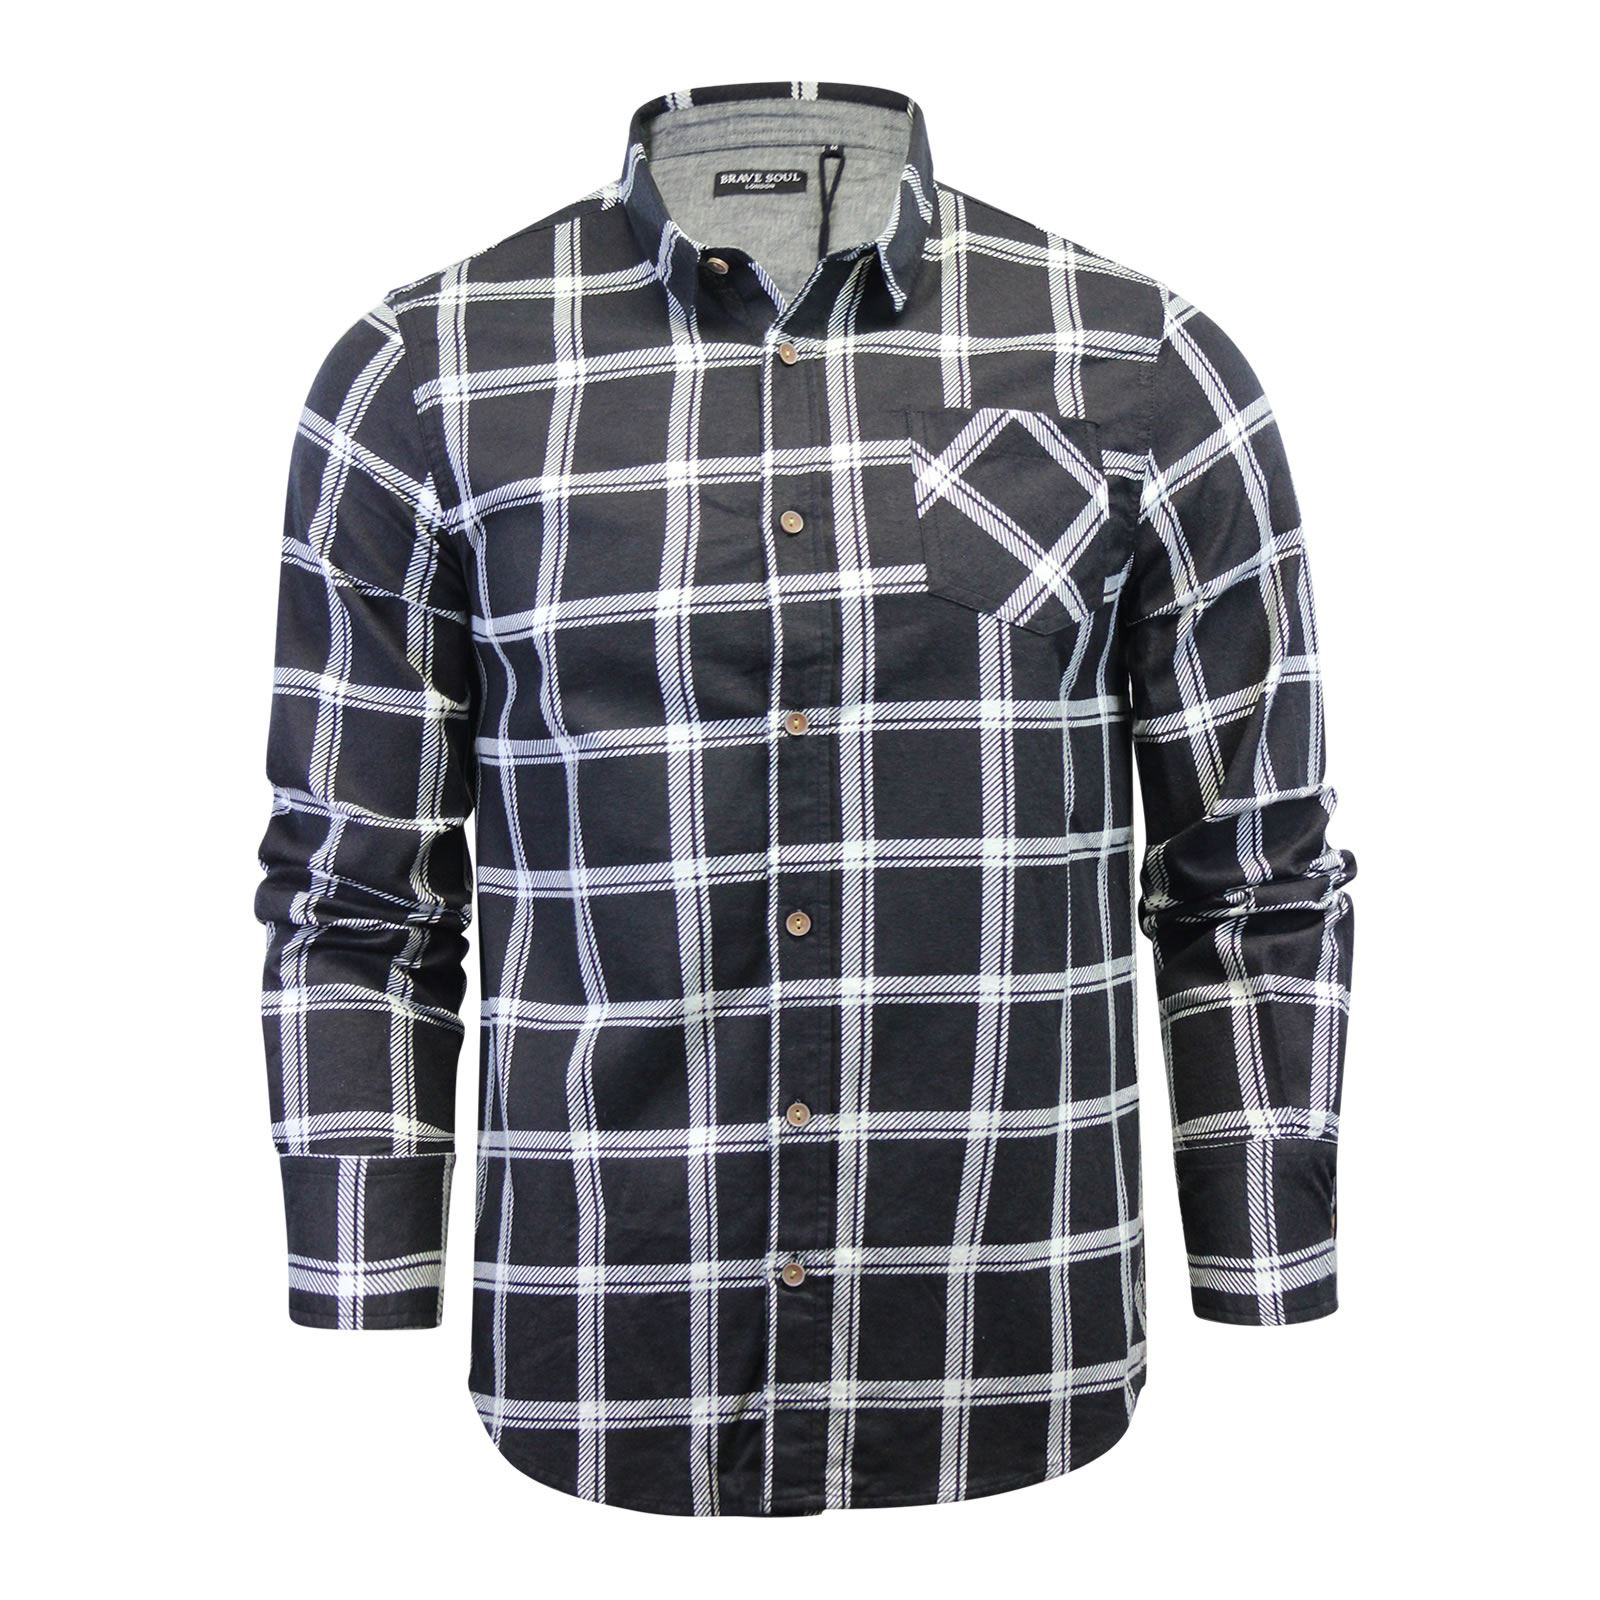 Brave-Soul-Mens-Check-Shirt-Flannel-Brushed-Cotton-Long-Sleeve-Casual-Top thumbnail 47